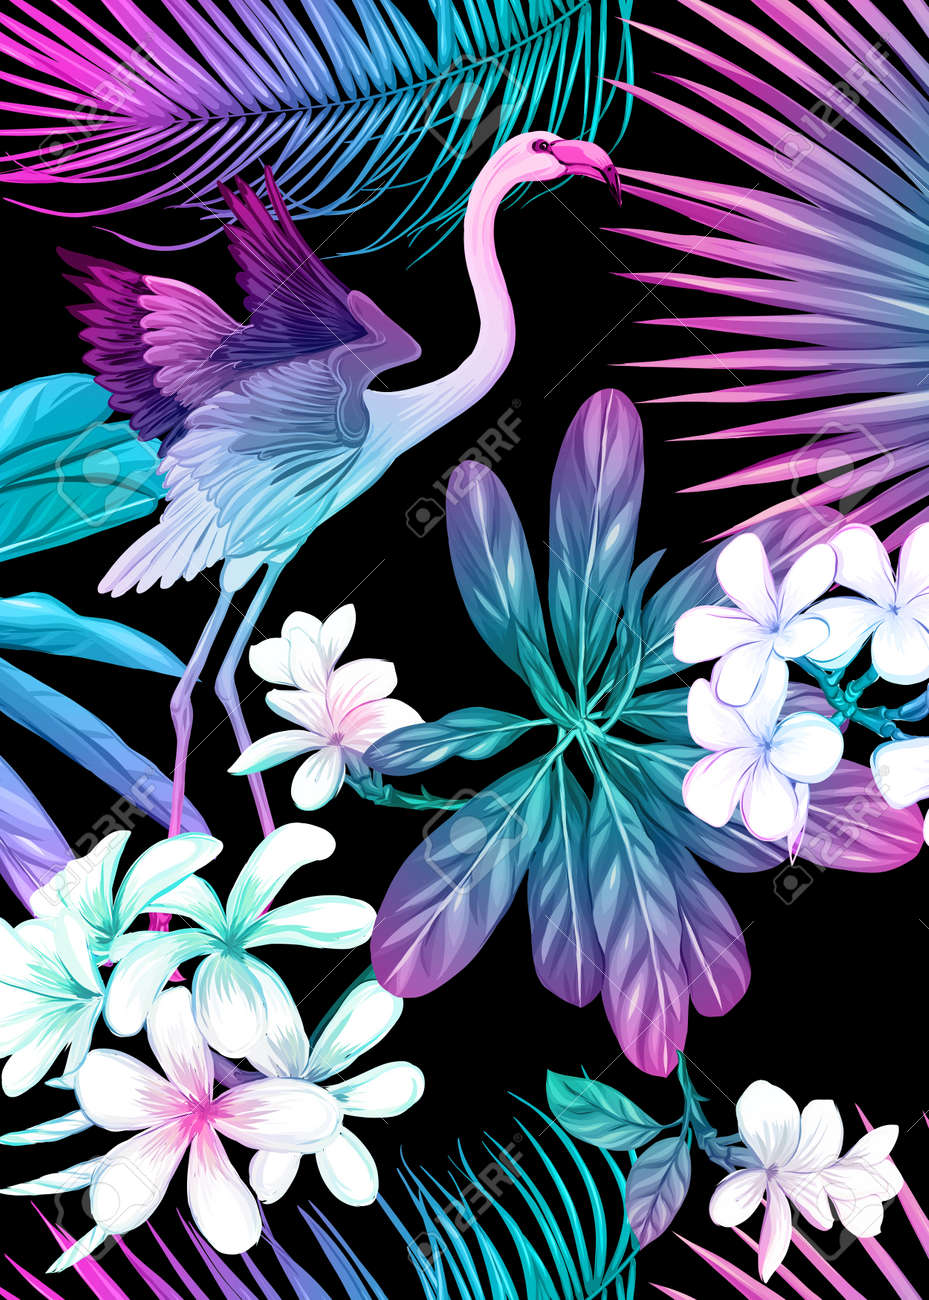 Background, wallpaper, cover with tropical plants, flowers and birds in neon, fluorescent colors. Vector illustration. Isolated on black background. - 133895783